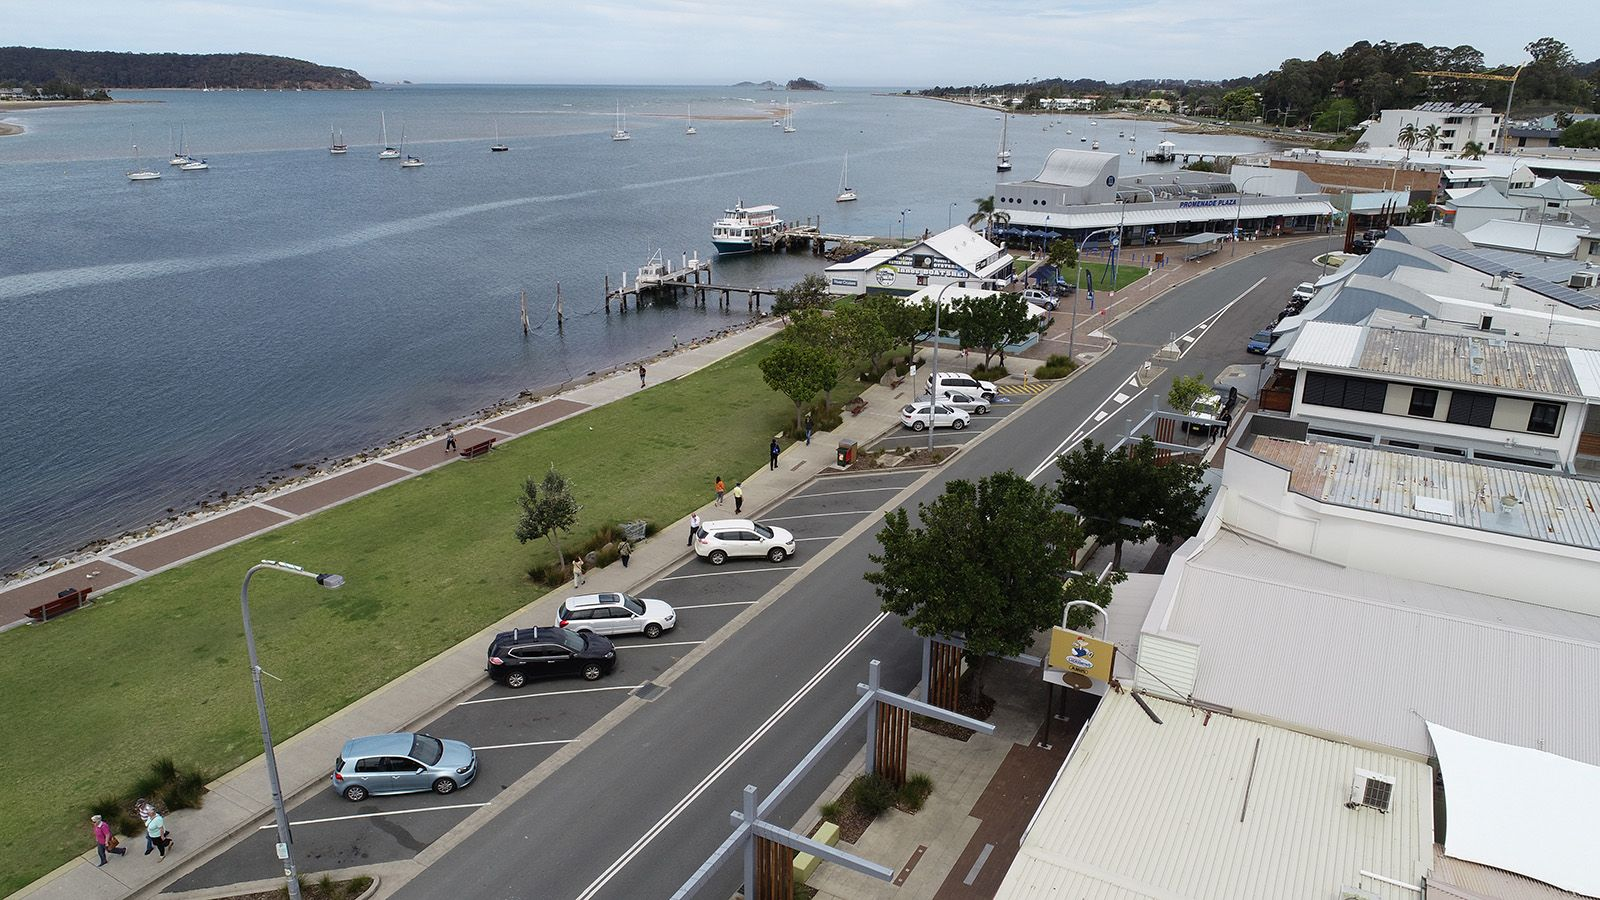 Aerial photograph of Batemans Bay parking areas next to the Clyde River banner image